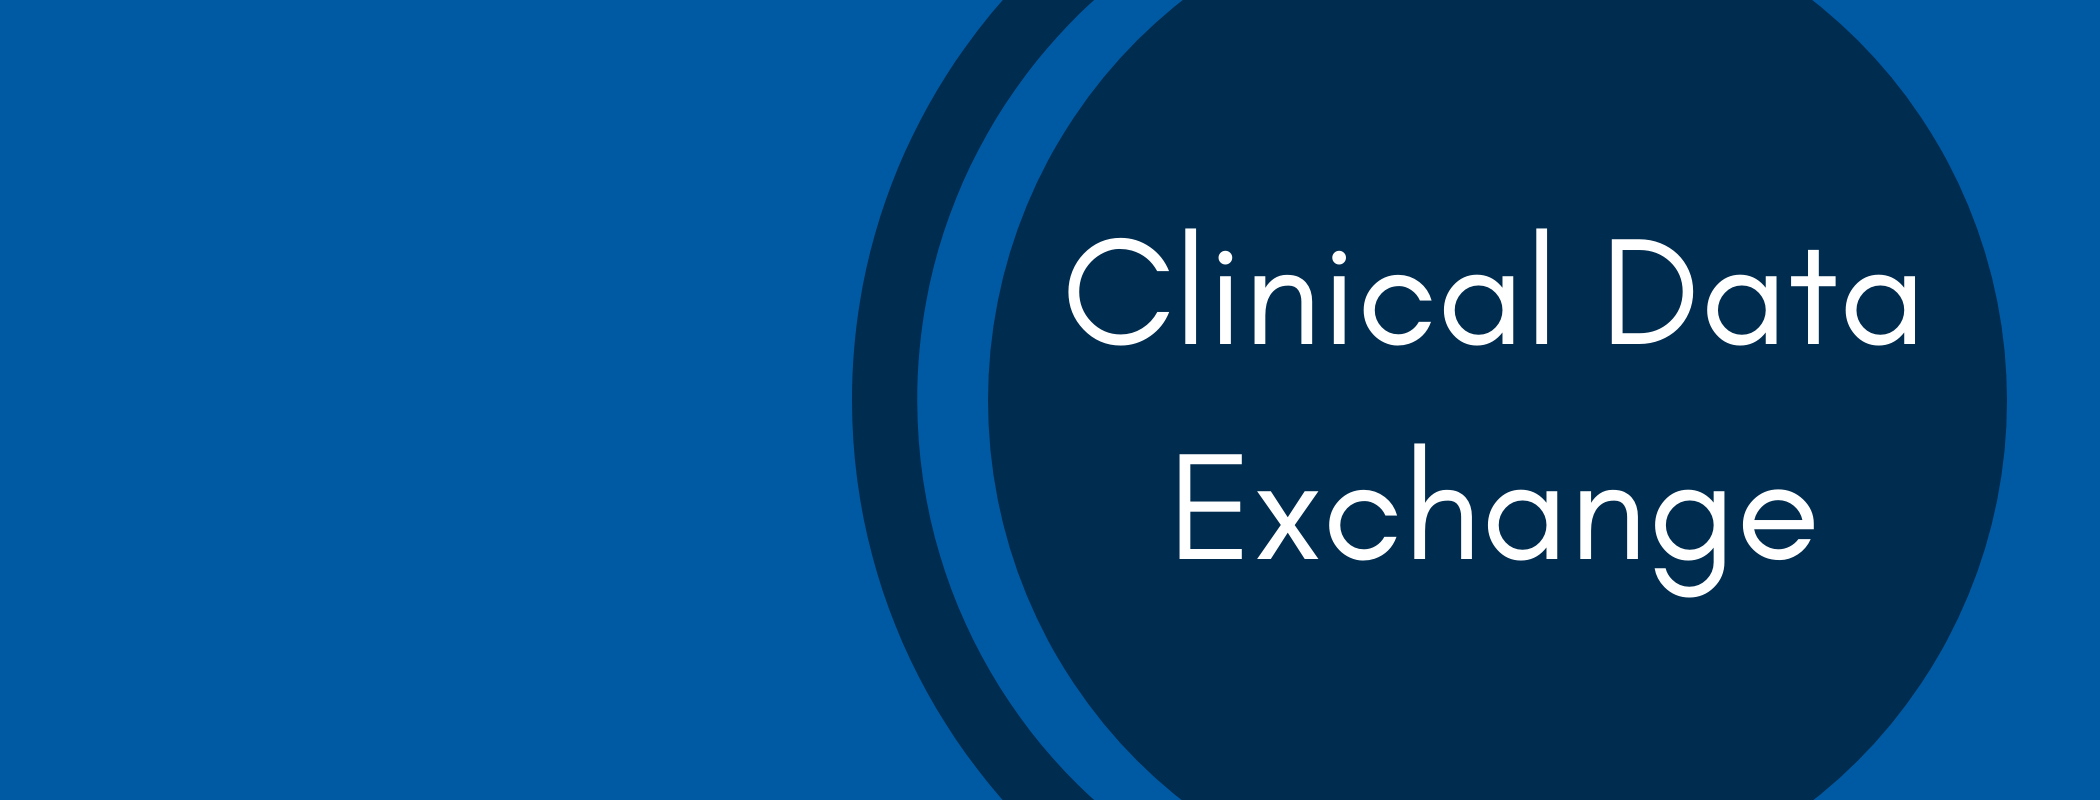 Clinical Data Exchange